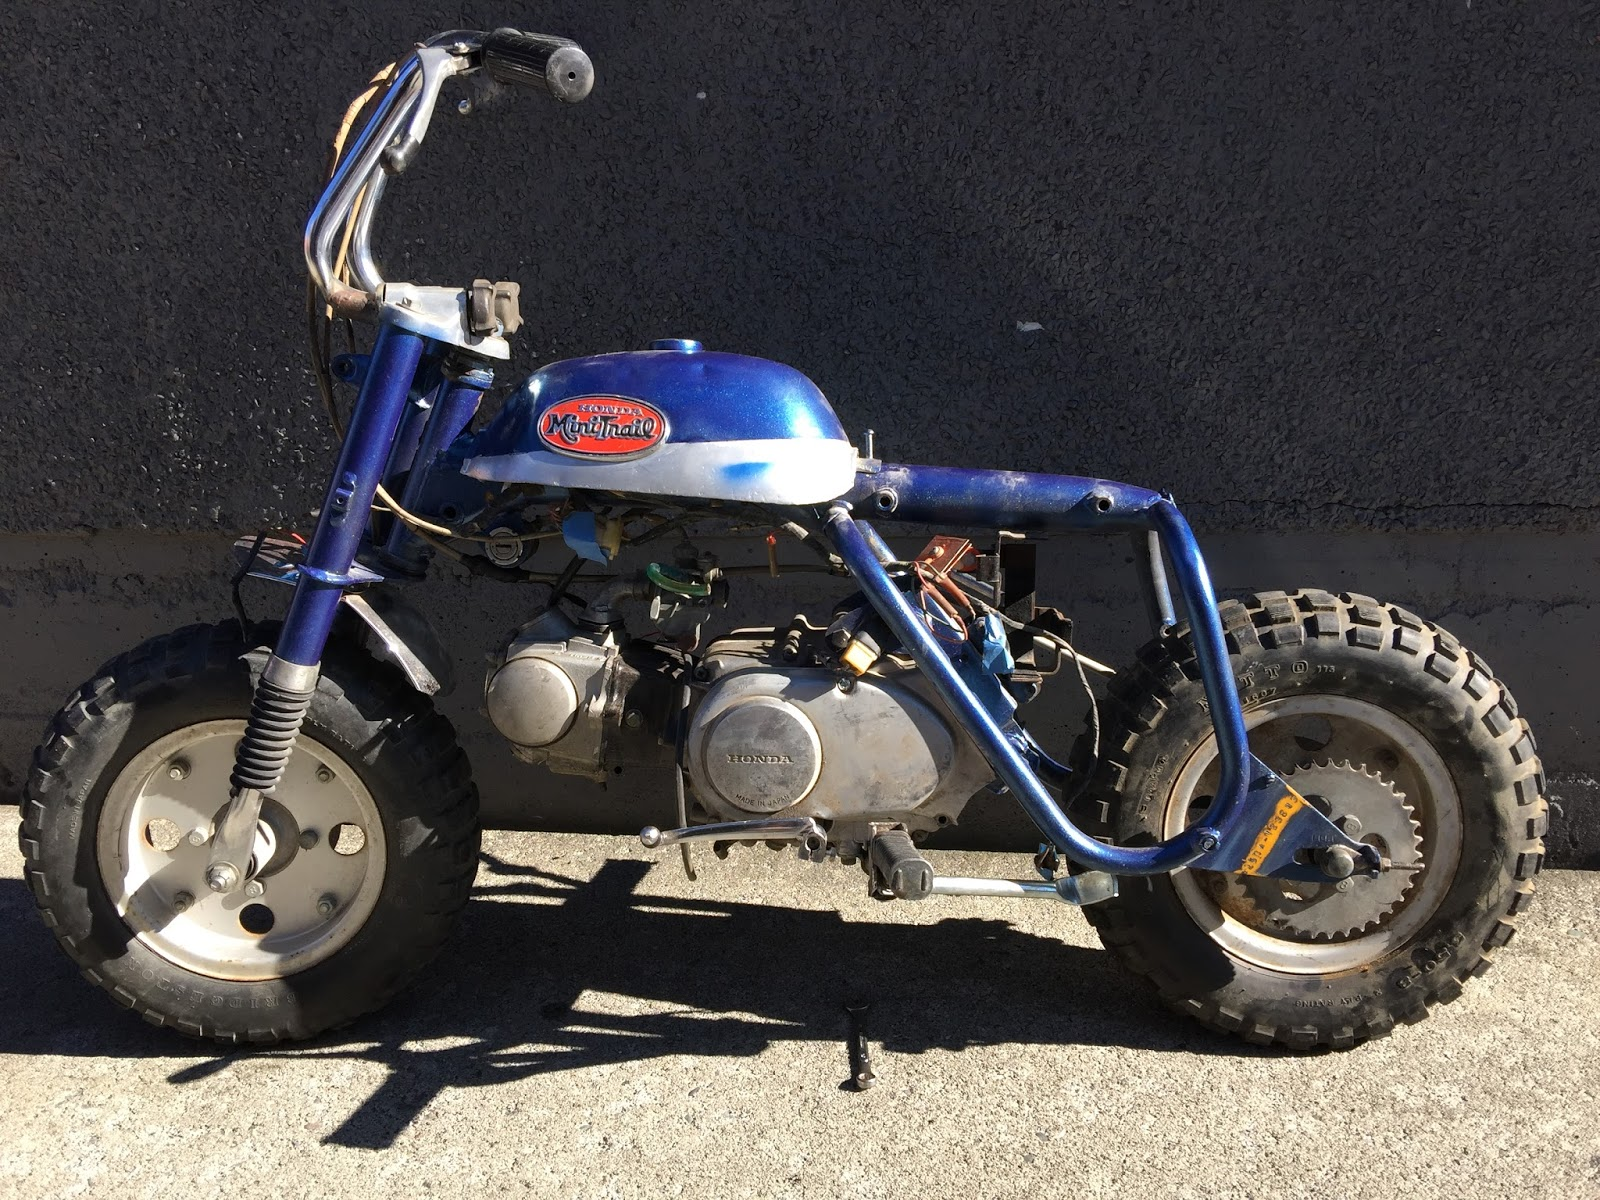 Z50 A Mini Trail Restoration Project Honda Z50r Wiring Diagram Next Steps The Fuel Tank Comes Off Handle Bars Electrical Wire Harness Rims And Tires Come All Cables Brakes Throttle Battery Rack Holder